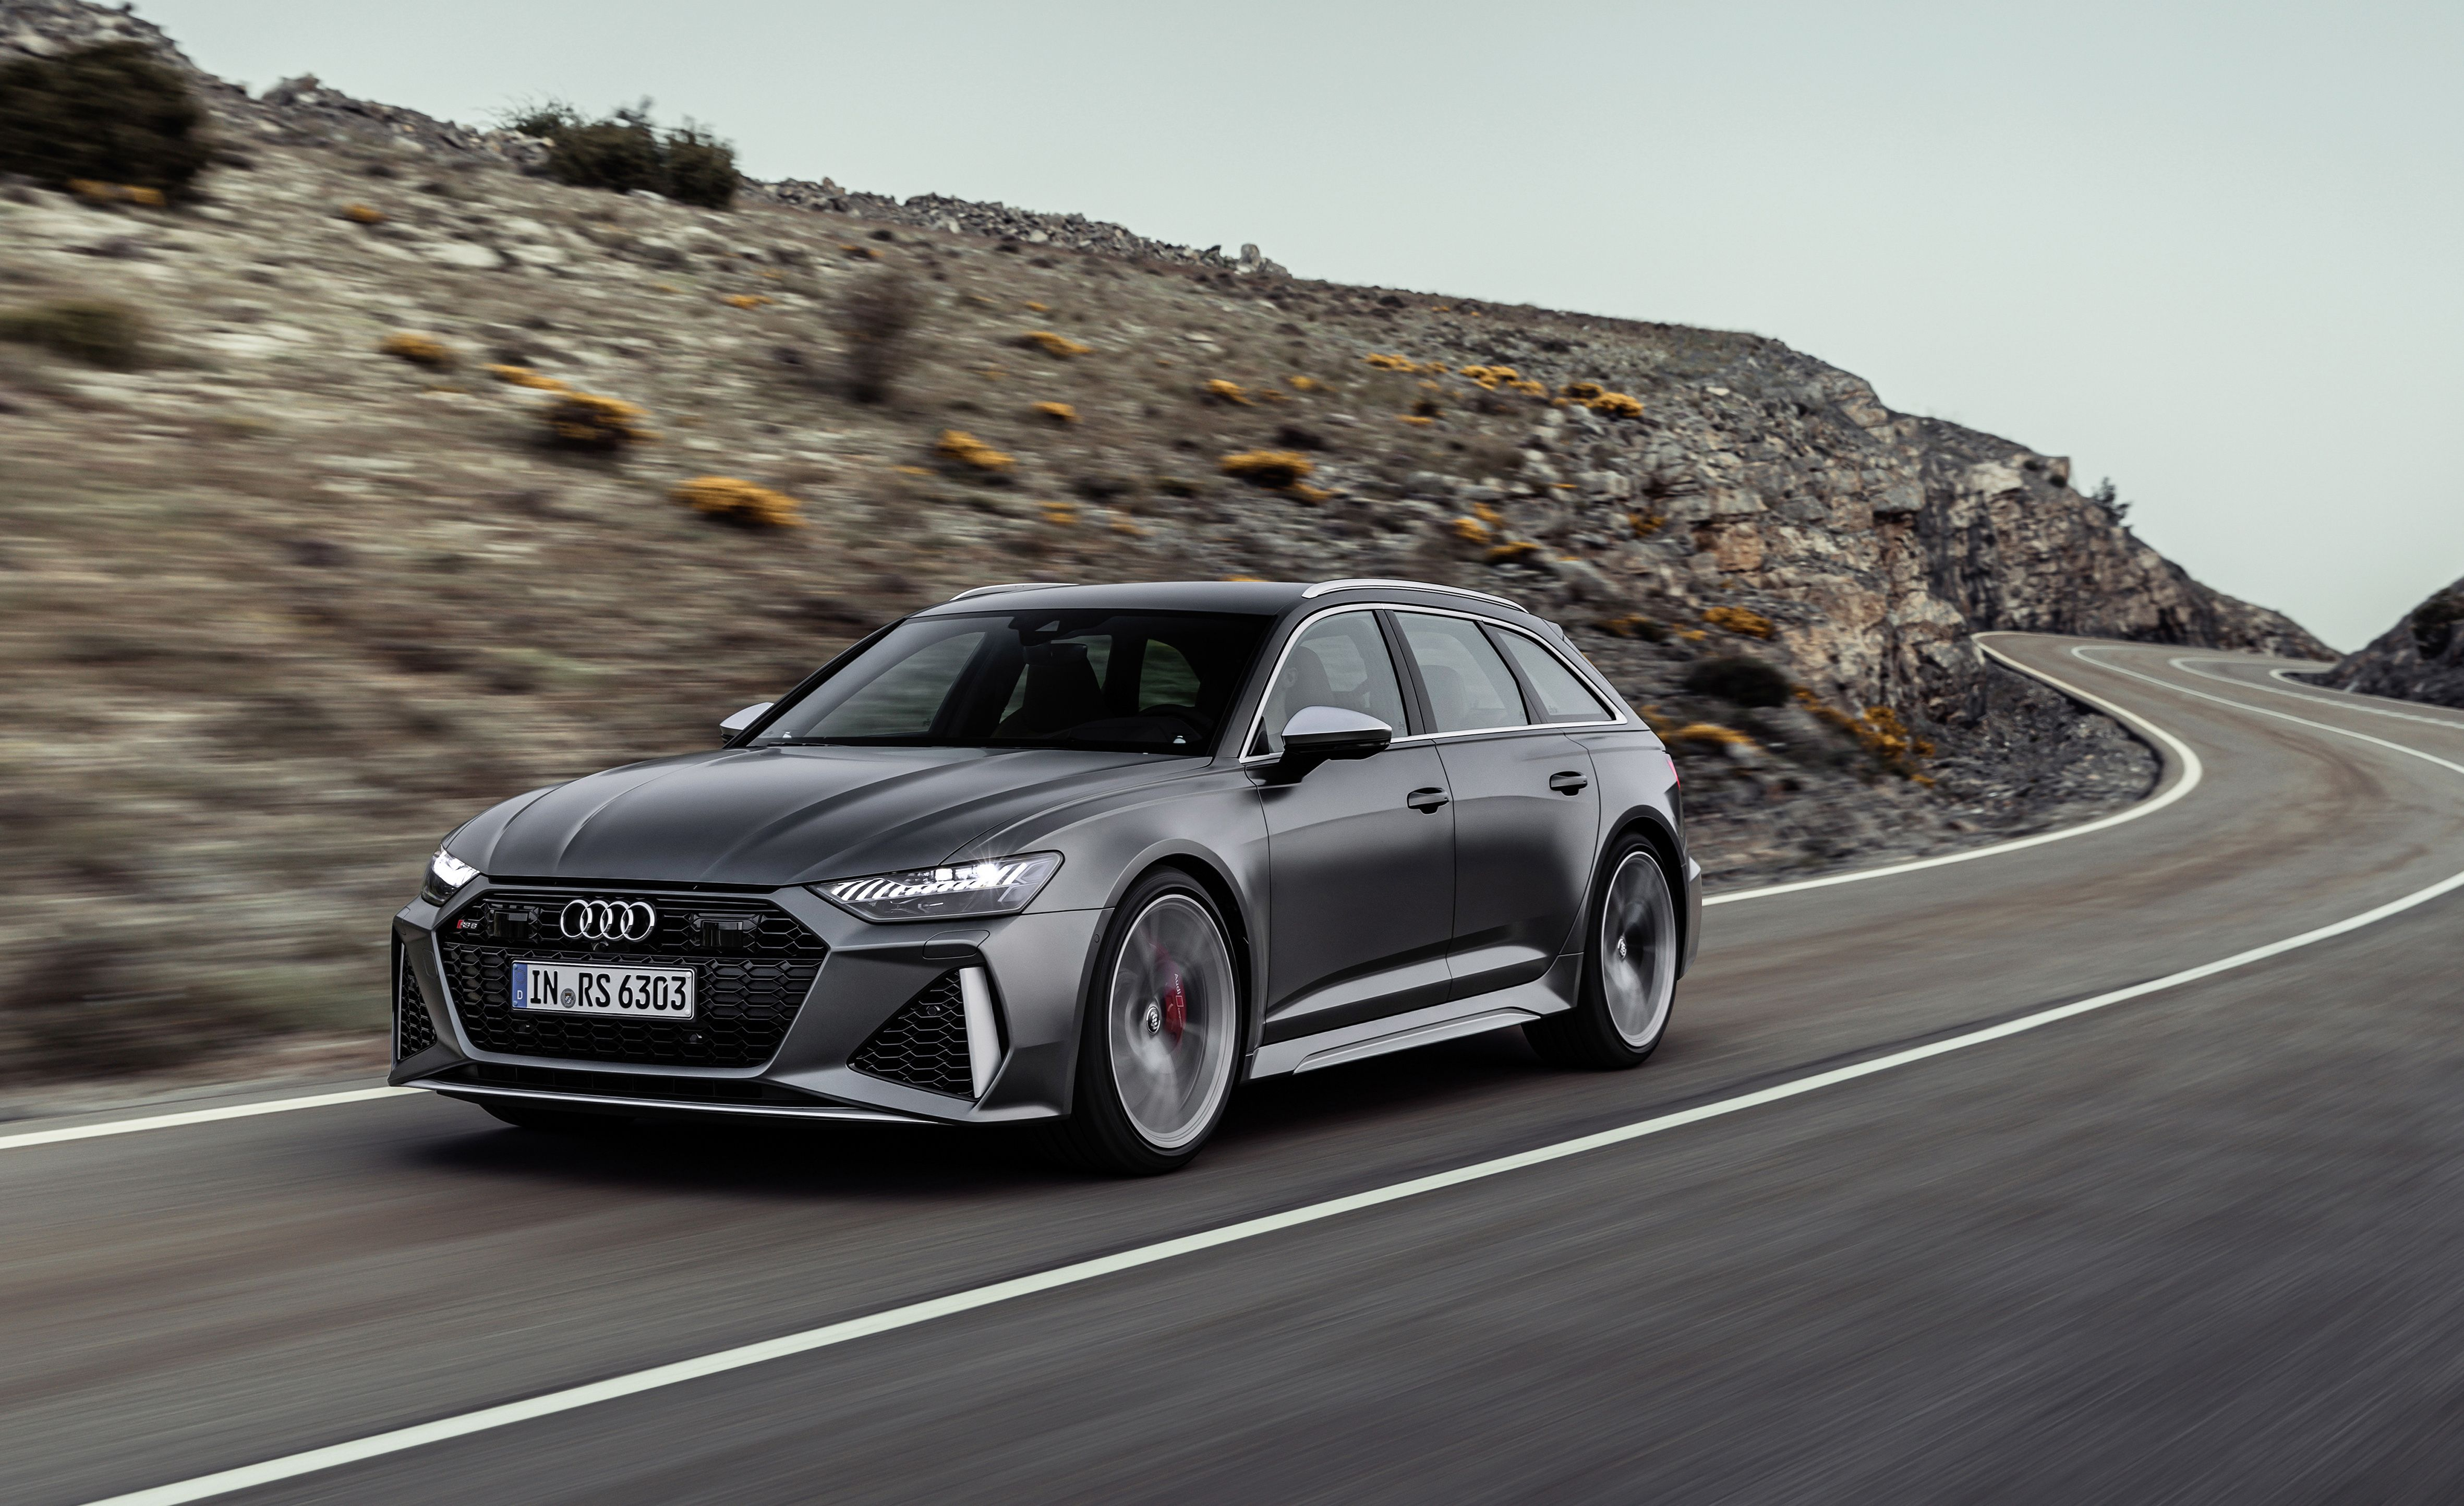 See The 2020 Audi Rs6 Avant From Every Angle